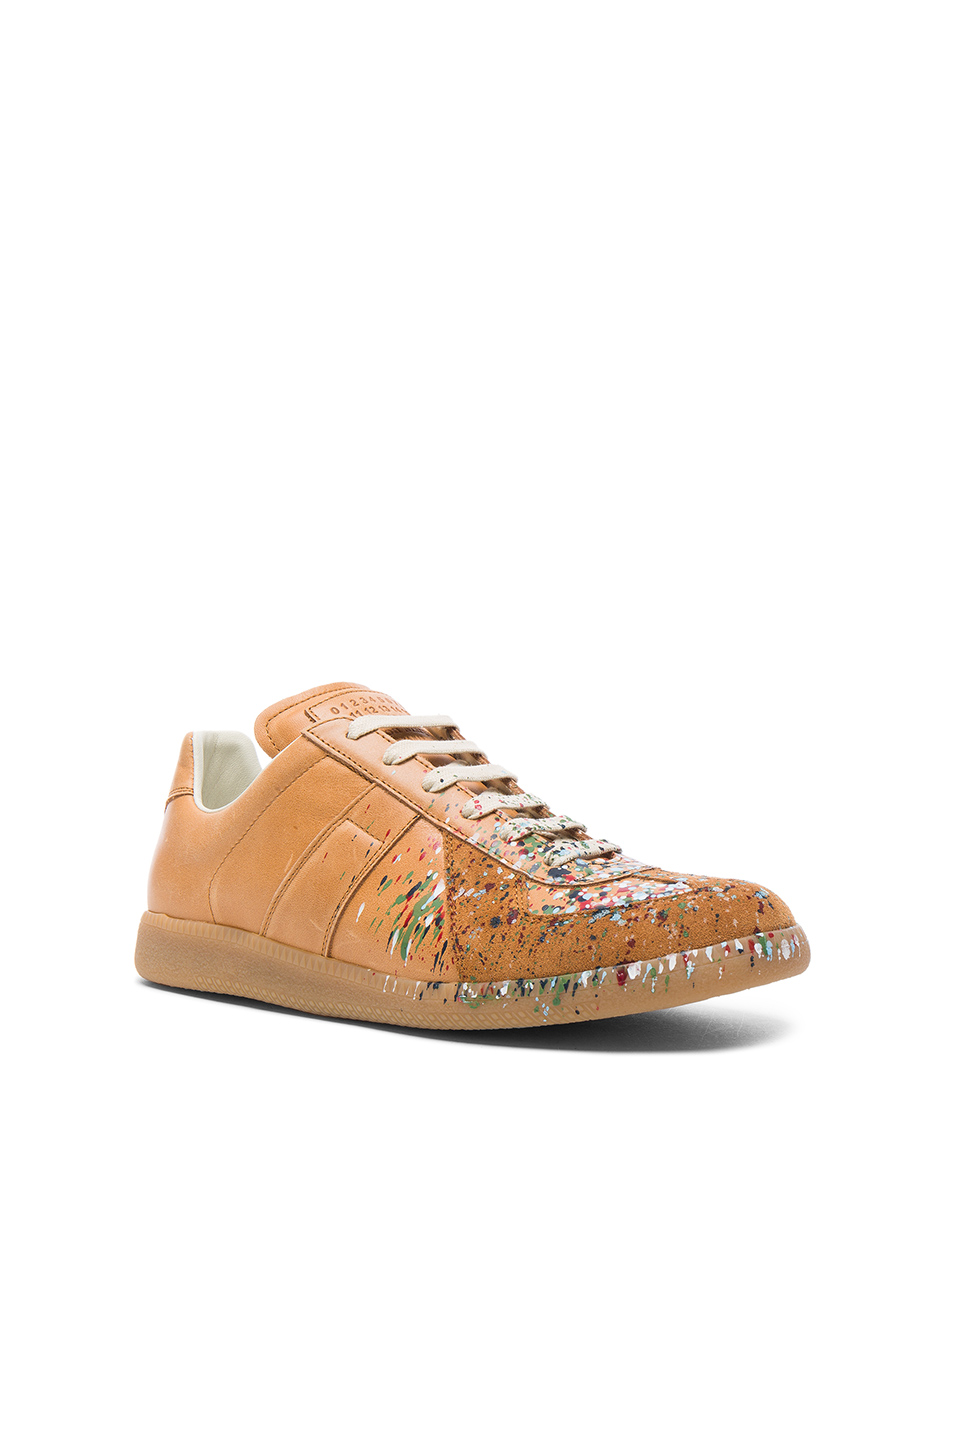 Maison Margiela Leather Replica Sneakers in Neutrals